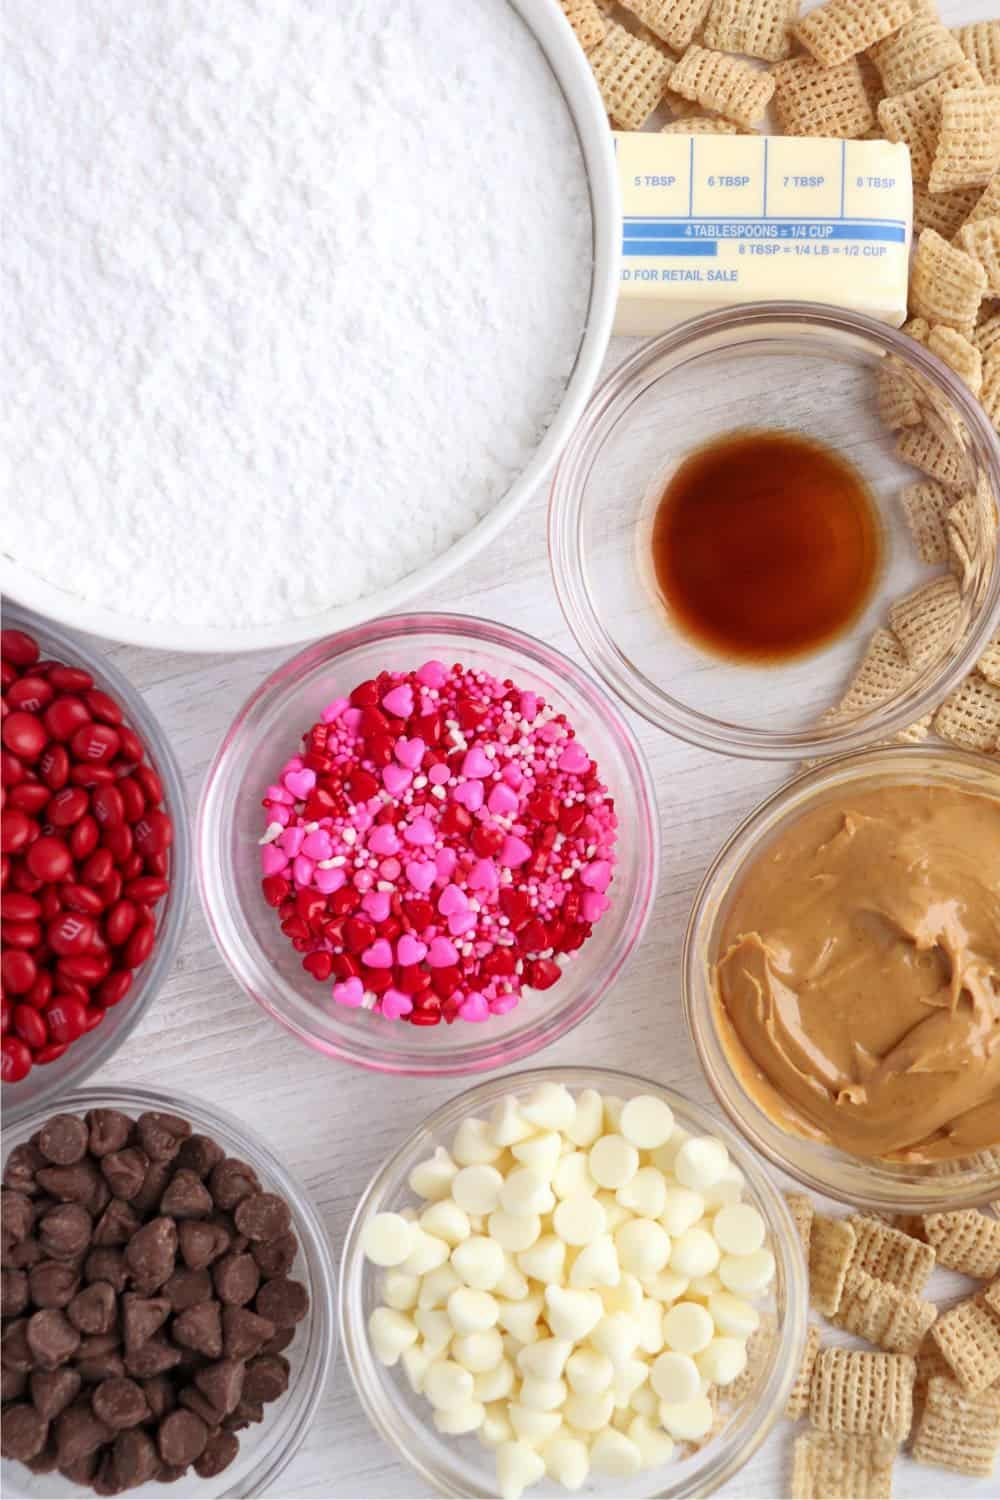 Peanut Butter Puppy Chow ingredients